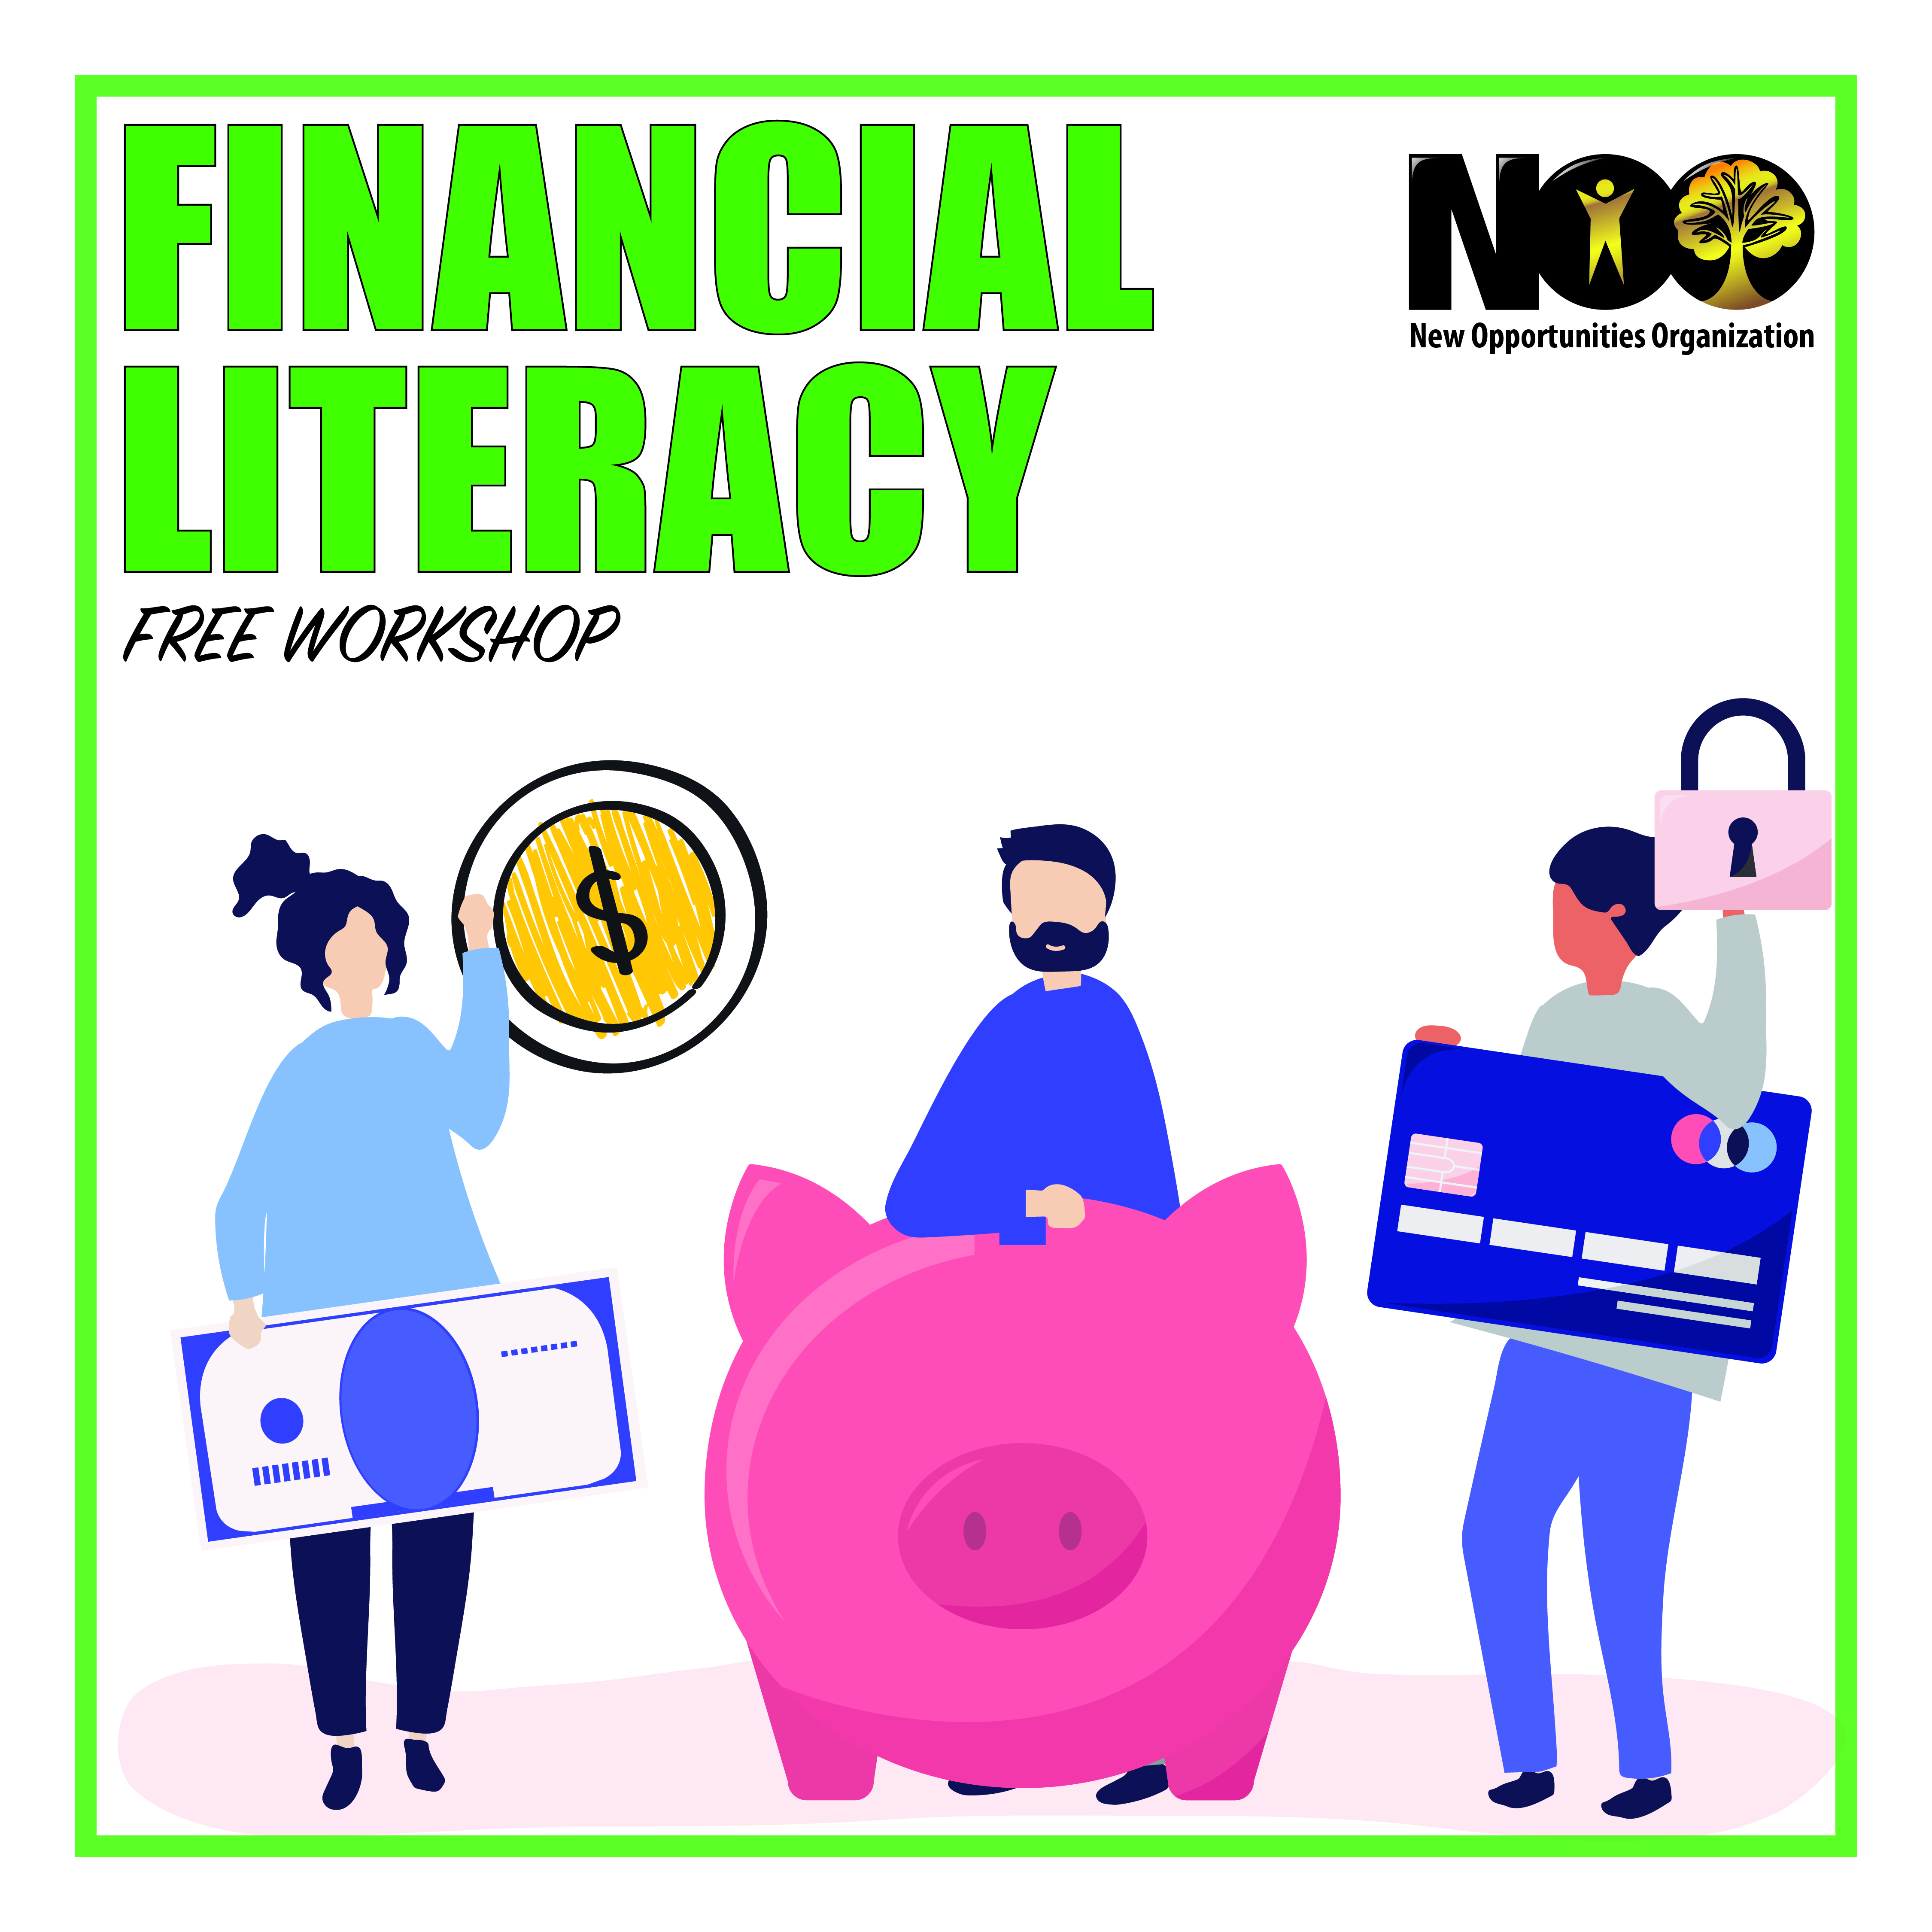 Our friends from The National Financial Literacy Campaign will be presenting in our next Community Connection Workshop.